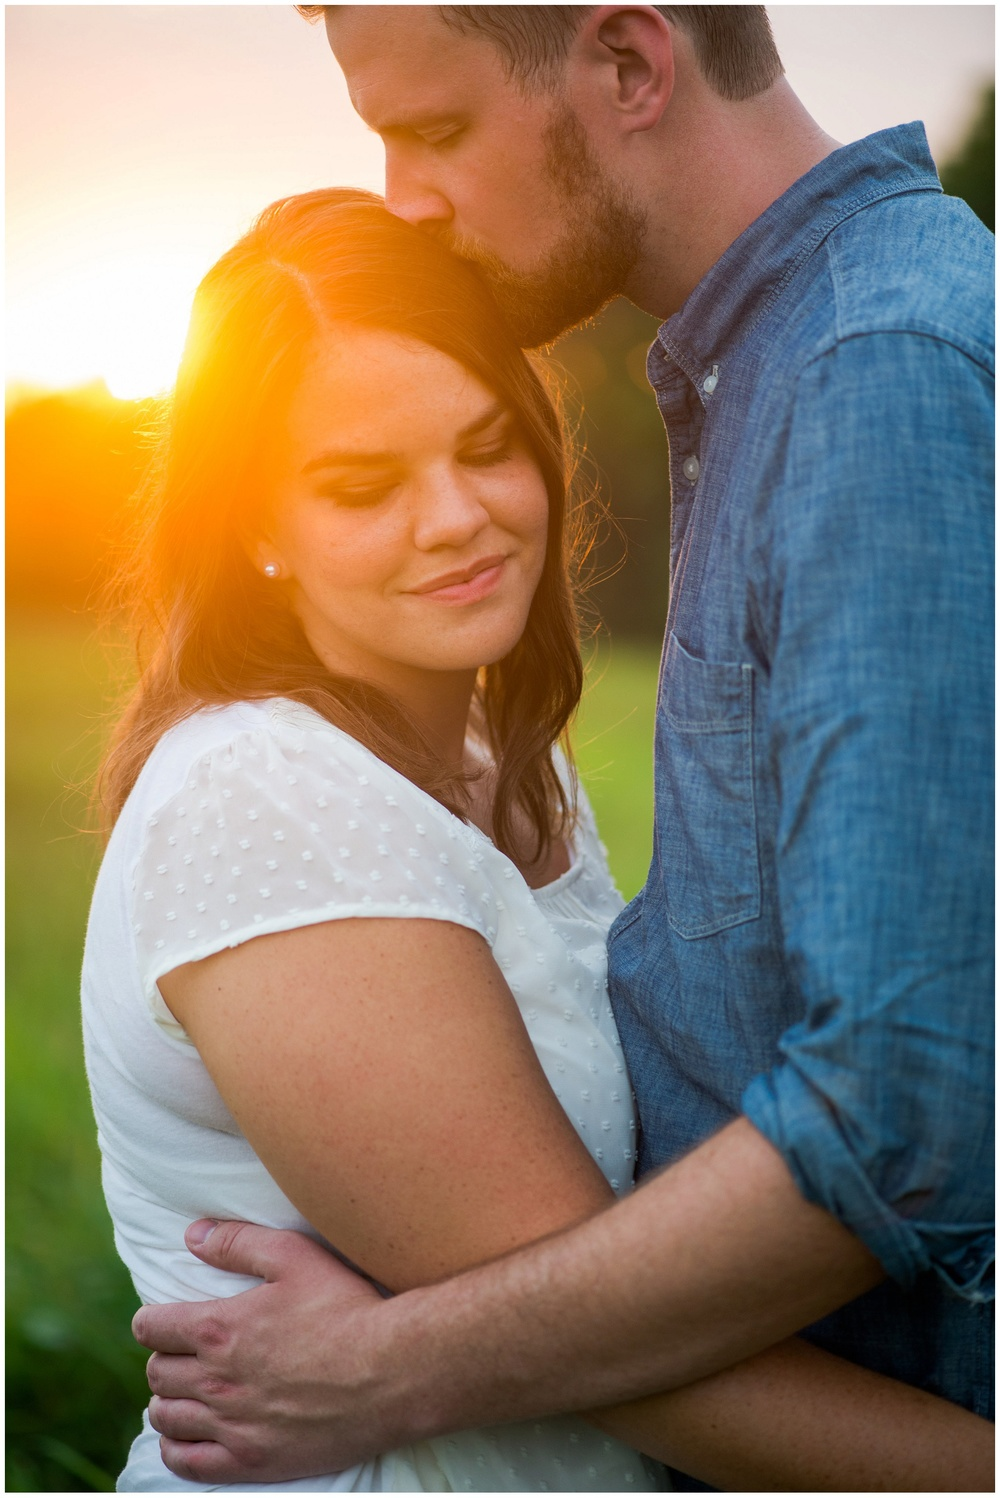 KimberlyPaigePhotography-Stacey&Jason_0097.jpg